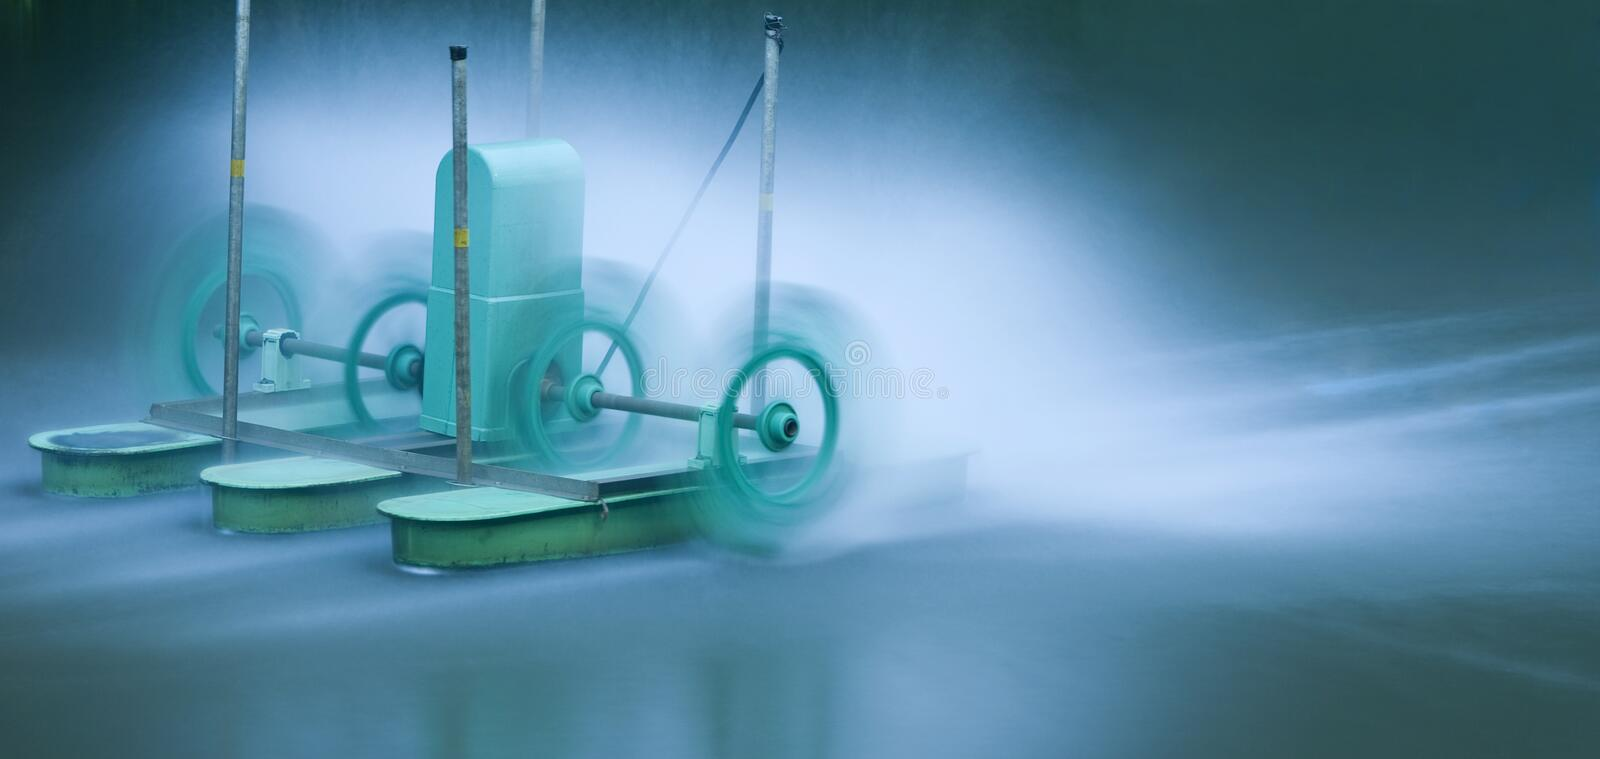 Green Electric Aerator For Water Treatment Stock Photos